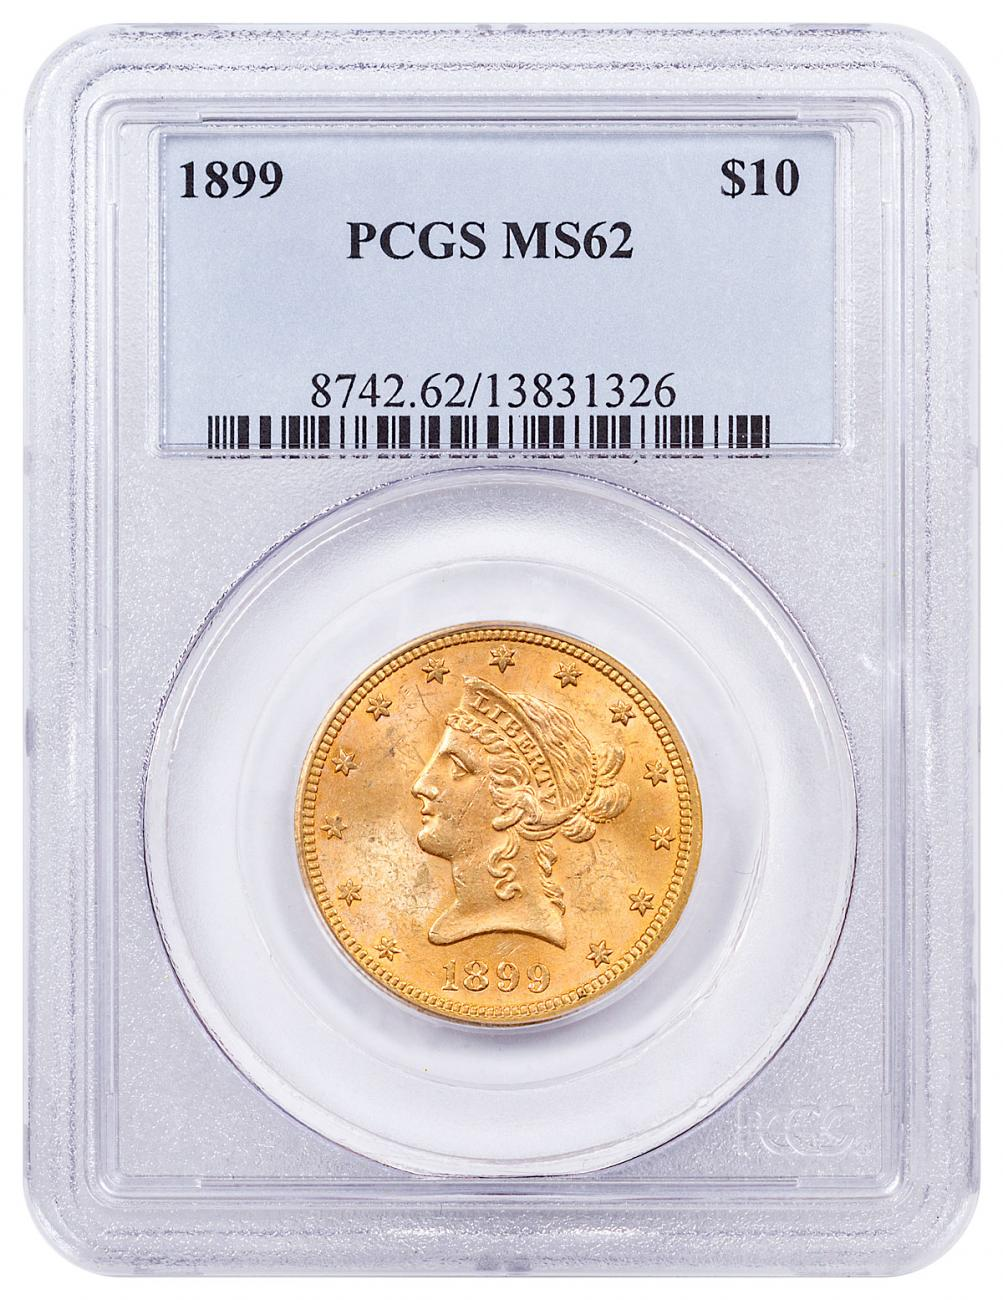 1899 Liberty Head $10 Gold Eagle PCGS MS62